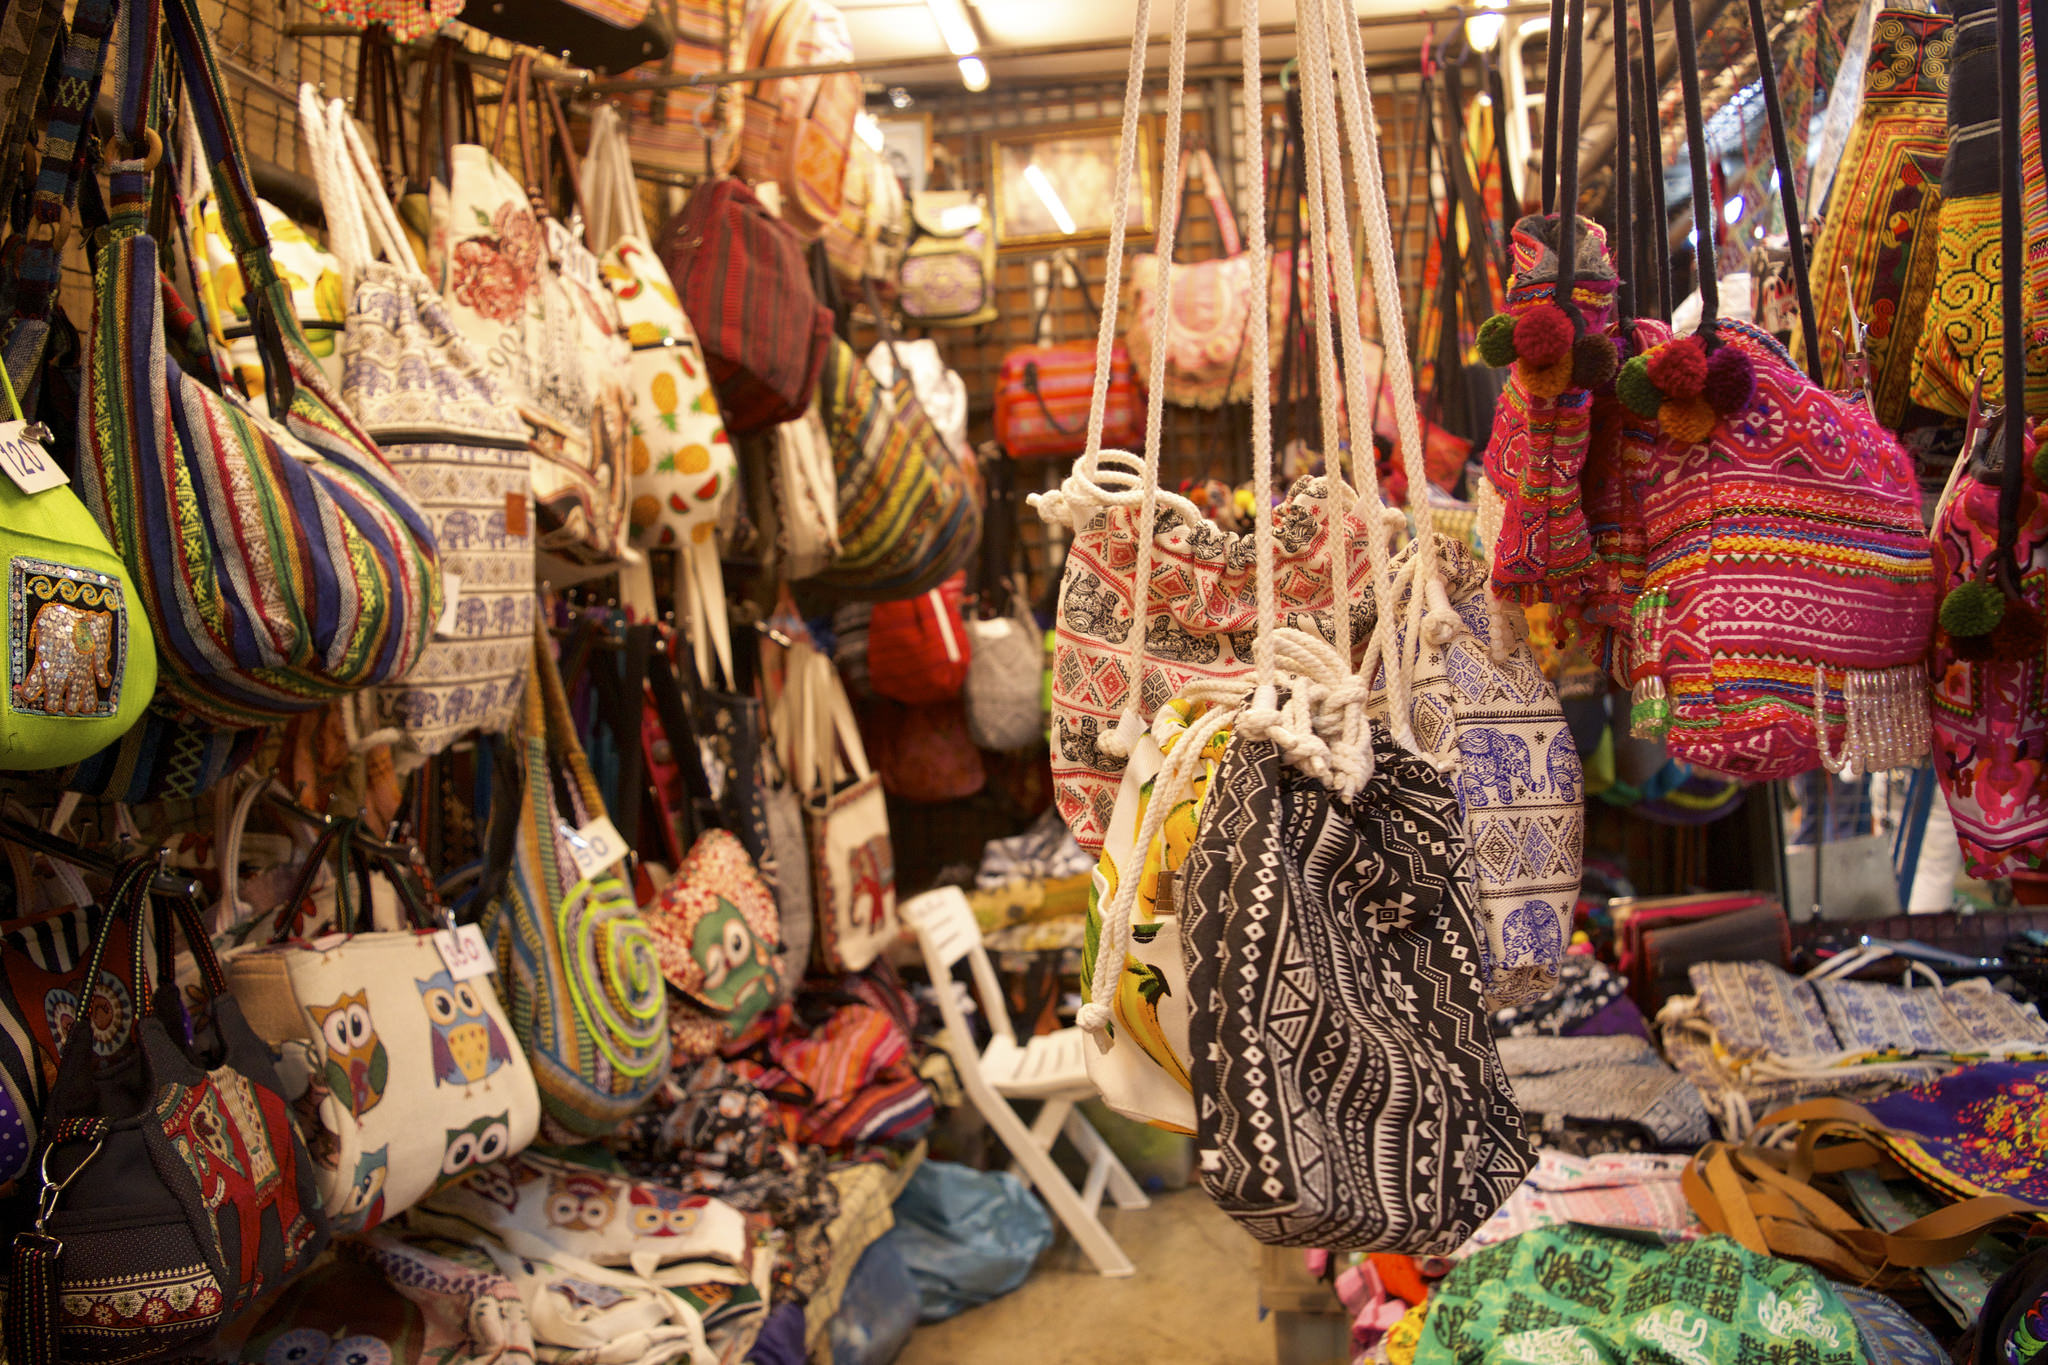 Purses On Display At Chatuchak Weekend Market Image Kelly Iverson